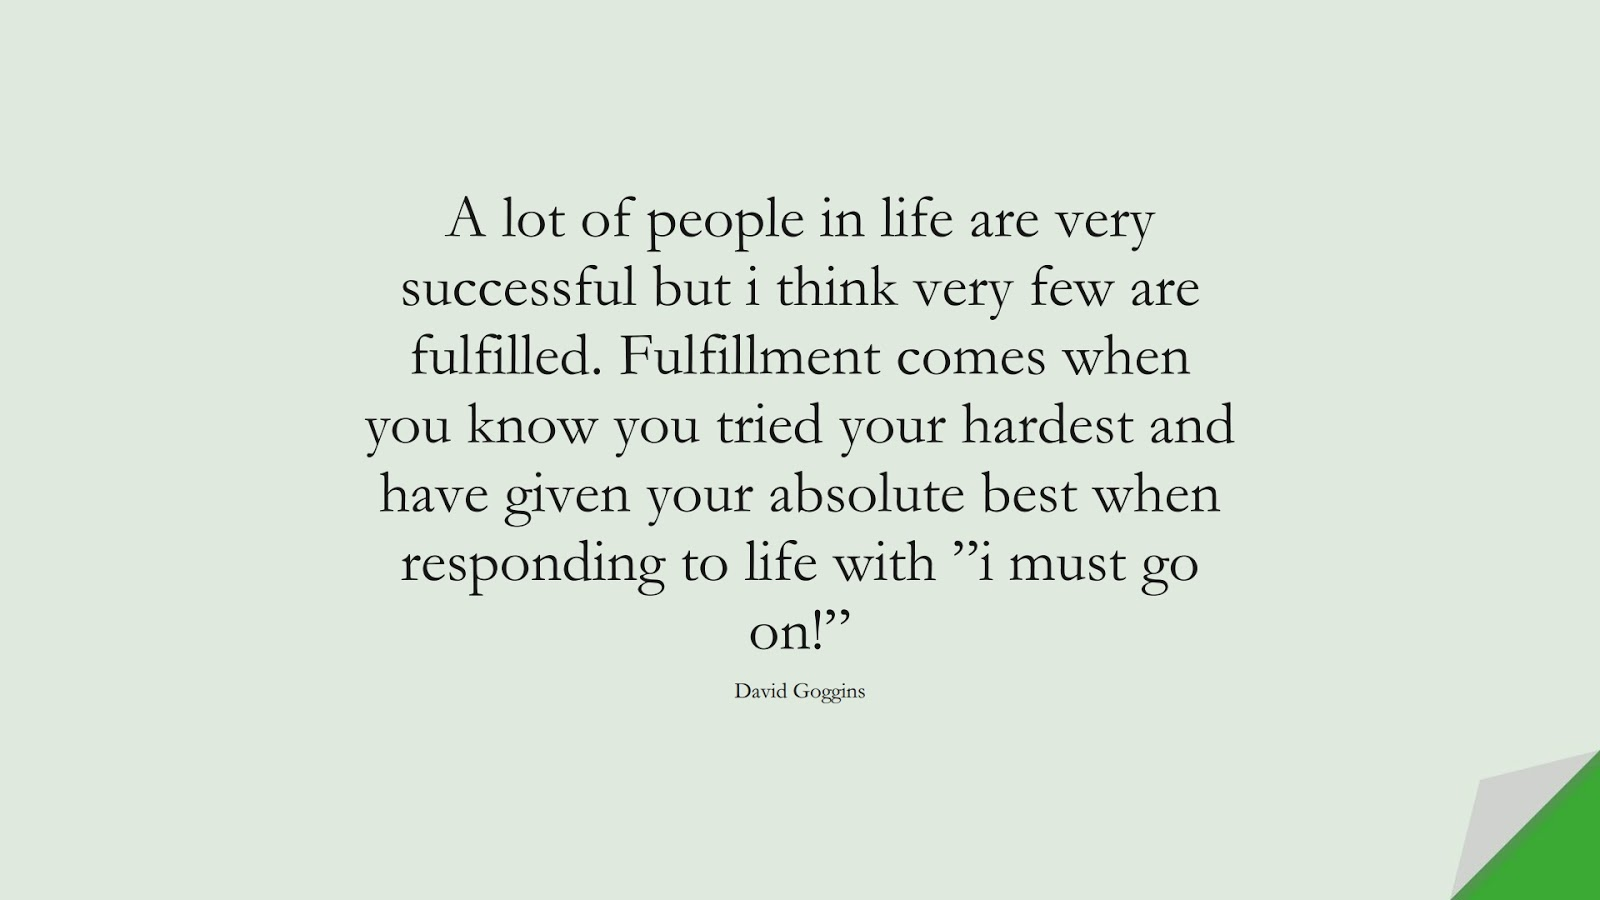 """A lot of people in life are very successful but i think very few are fulfilled. Fulfillment comes when you know you tried your hardest and have given your absolute best when responding to life with """"i must go on!"""" (David Goggins);  #BeingStrongQuotes"""